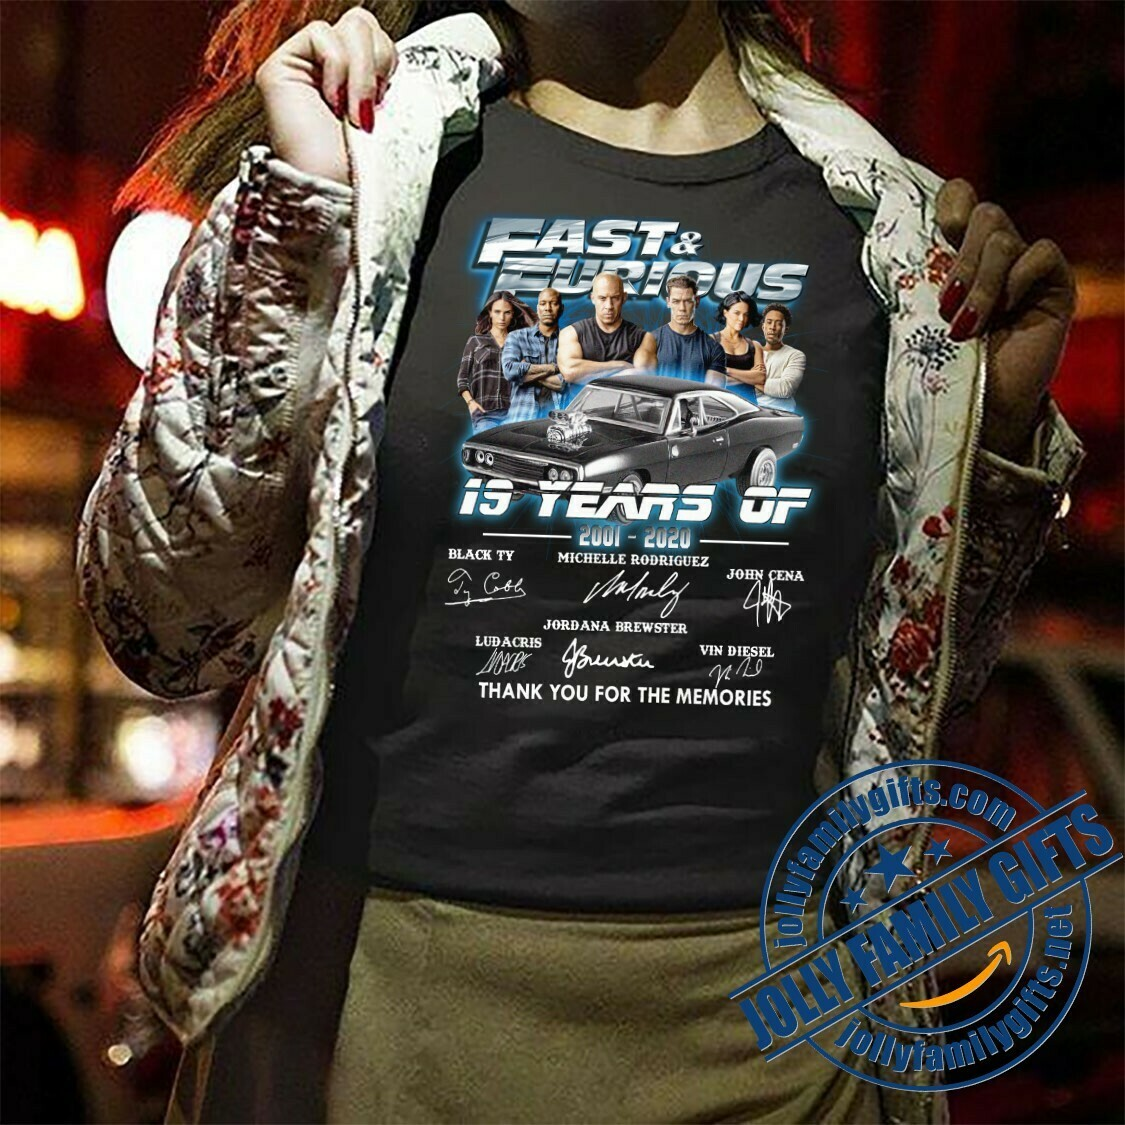 19 Years of Fast and Furious 2001 2020 Movies Signature Thank You For The Memories Awesome Gift for F&F Action Fans Love  T-Shirt Hoodie Sweatshirt Sweater Tee Kids Youth Gifts Jolly Family Gifts